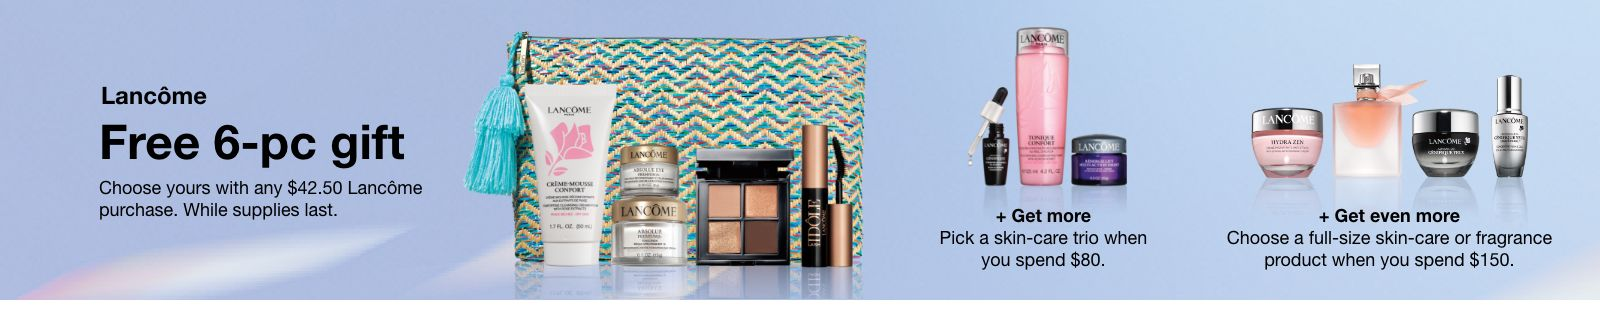 Lancome Free 6-piece gift, Choose yours with any $42.50 Lancome purchase, While supplies last, + Get more, Pick a skin-care trio when you spend $80 + Get even more